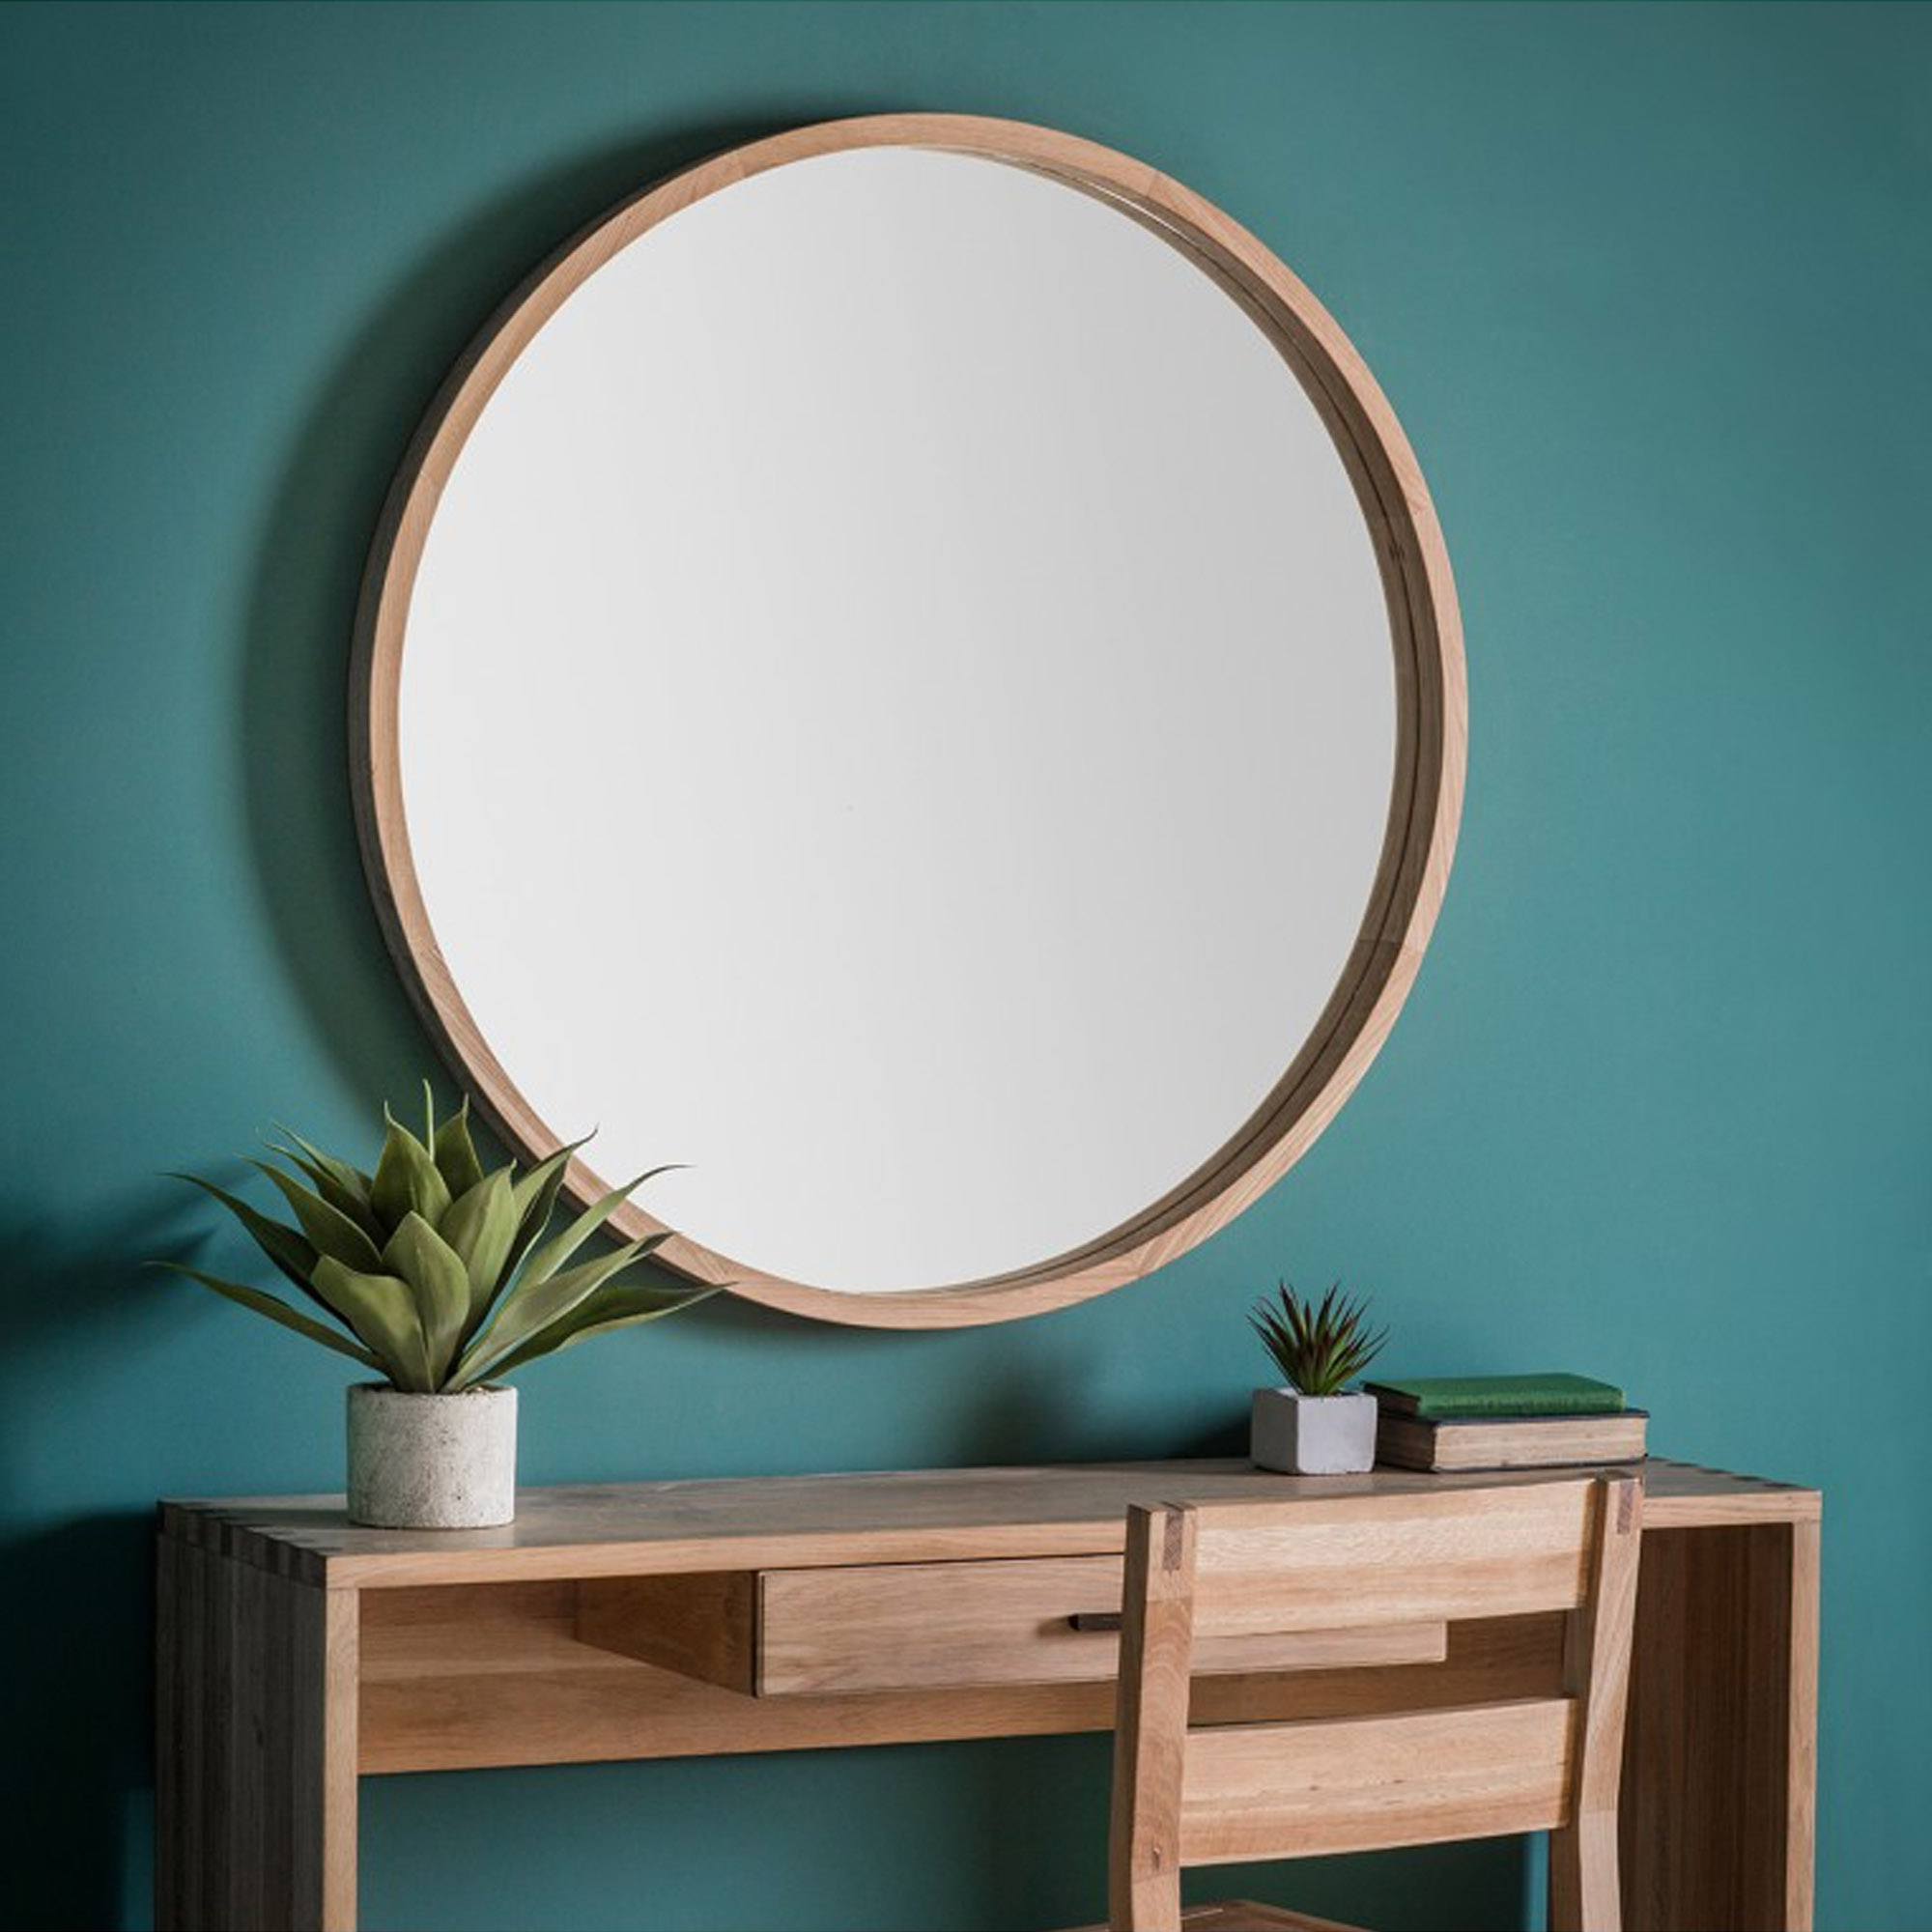 Bowman Large Round Wall Mirror Throughout Widely Used Big Round Wall Mirrors (View 1 of 20)